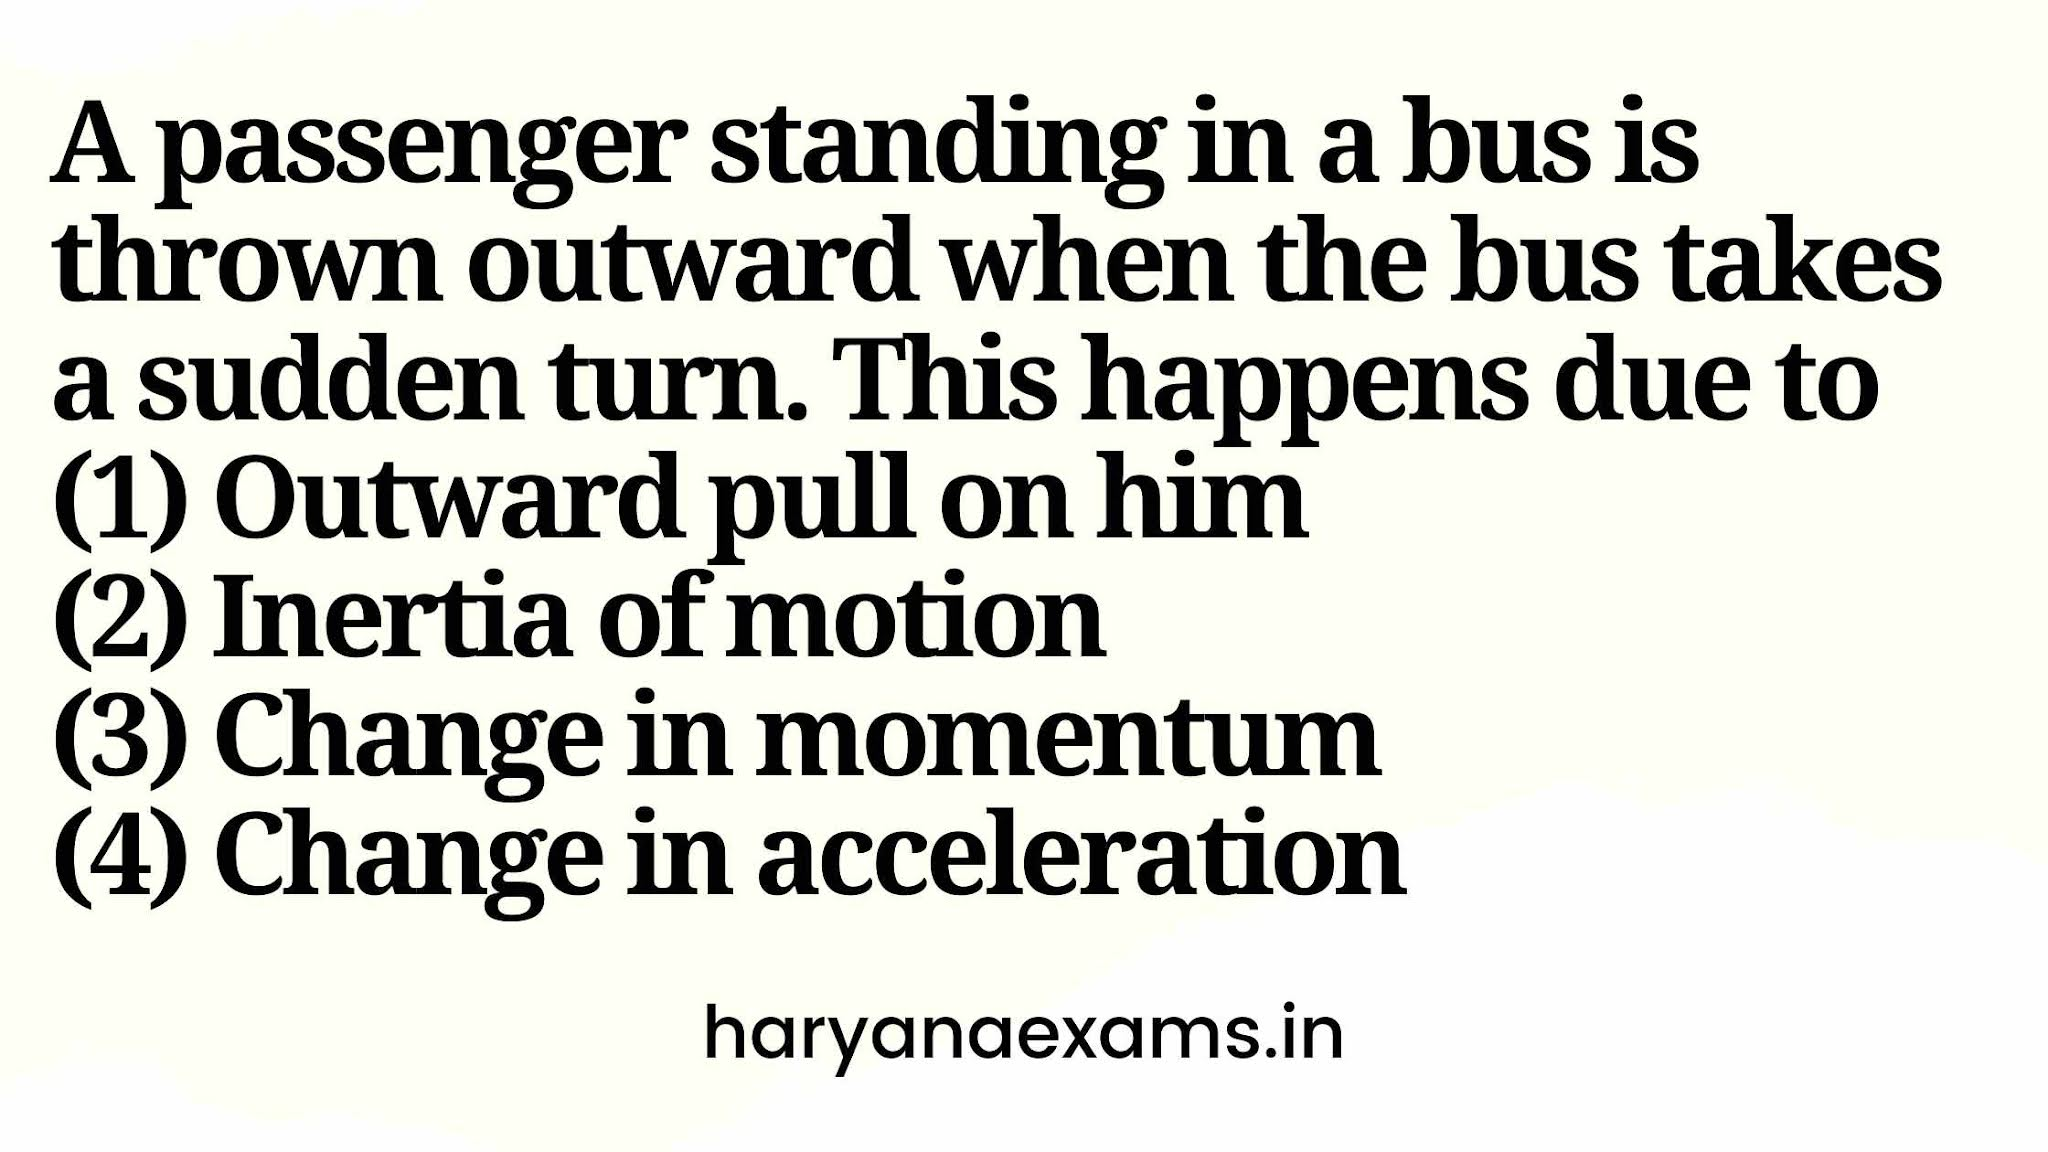 A passenger standing in a bus is thrown outward when the bus takes a sudden turn. This happens due to   (1) Outward pull on him   (2) Inertia of motion   (3) Change in momentum   (4) Change in acceleration